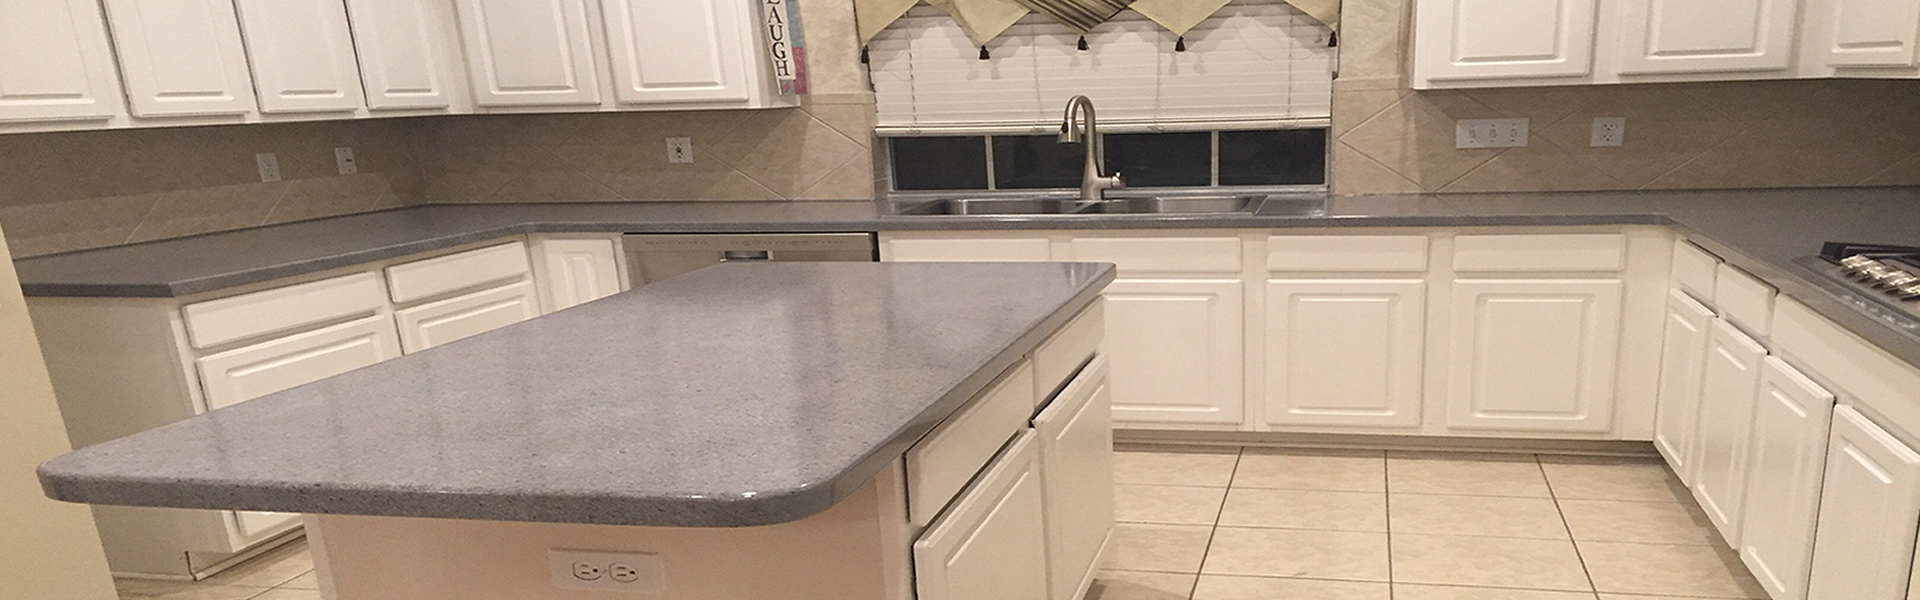 BATHTUB REFINISHING IN BOSTON, MASSACHUSETT, CULTURED AND LAMINATE FORMICA,  AFFORDABLE CABINETS AND COUNTERTOPS RESURFACING, Cabinets Refacing, Tile,  ...